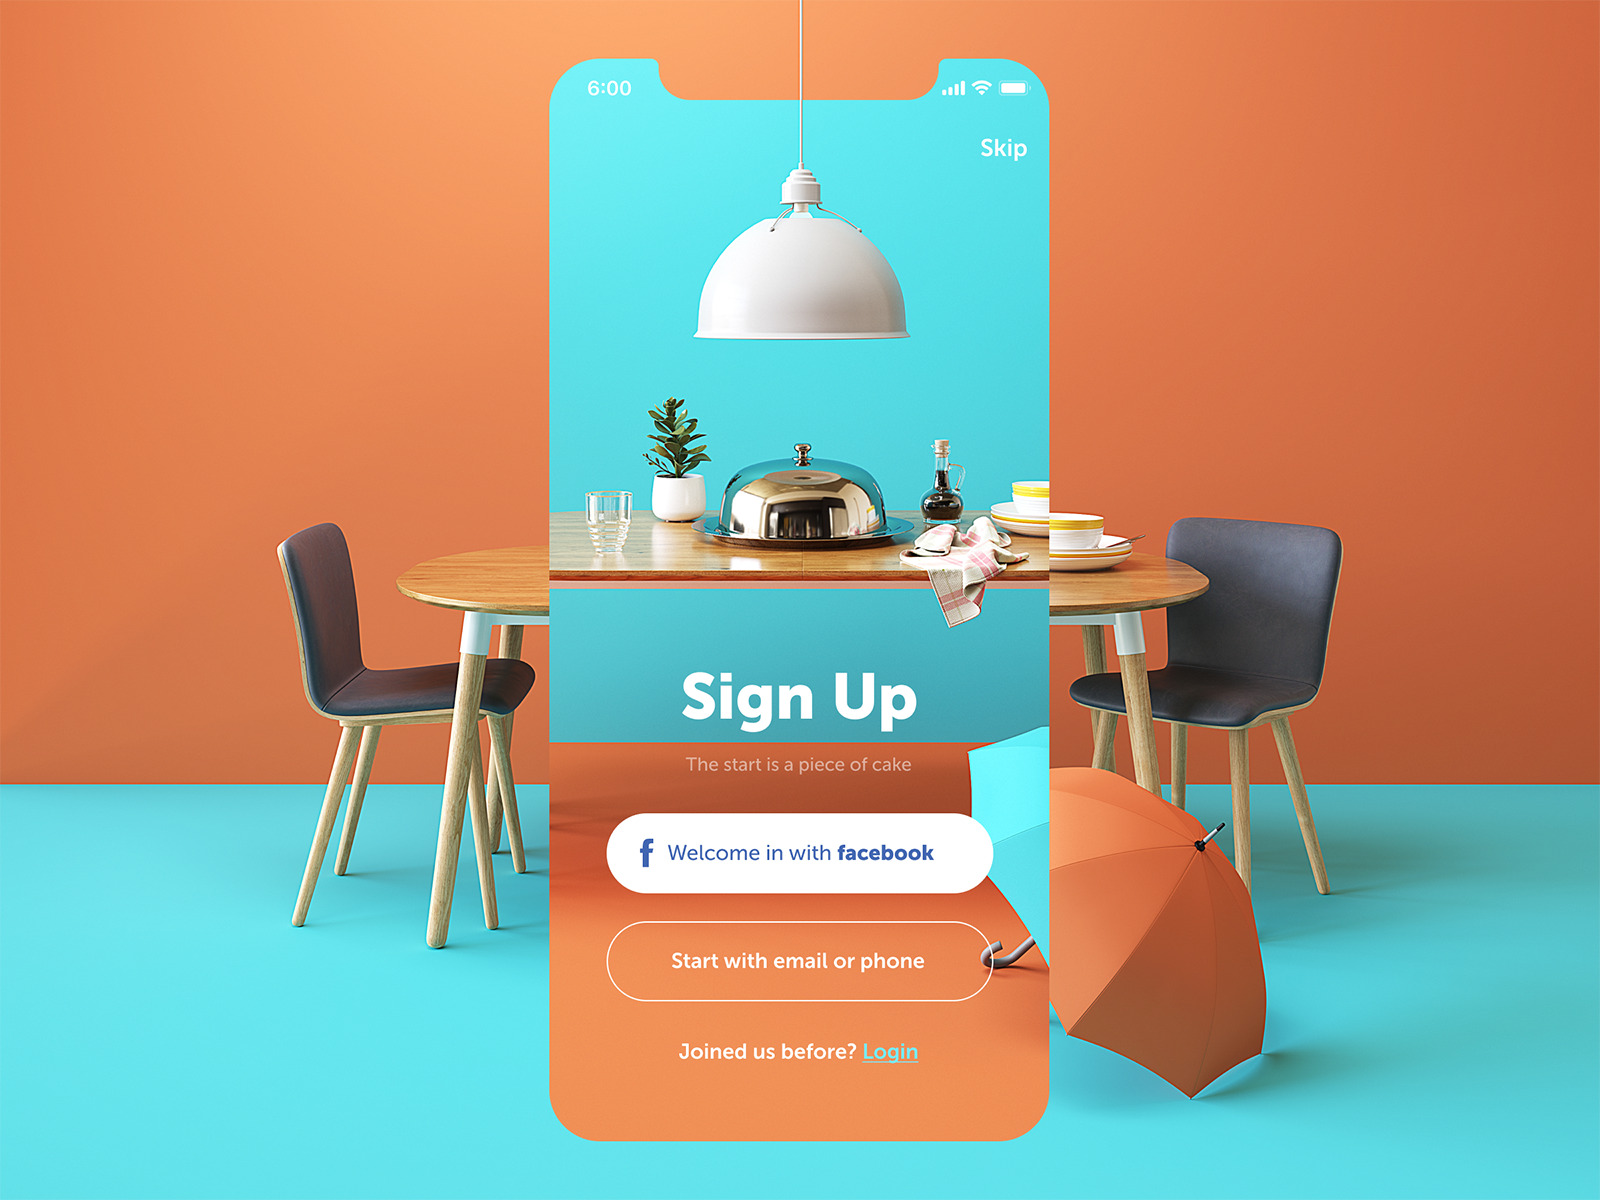 Restaurant App Sign Up #userinterface